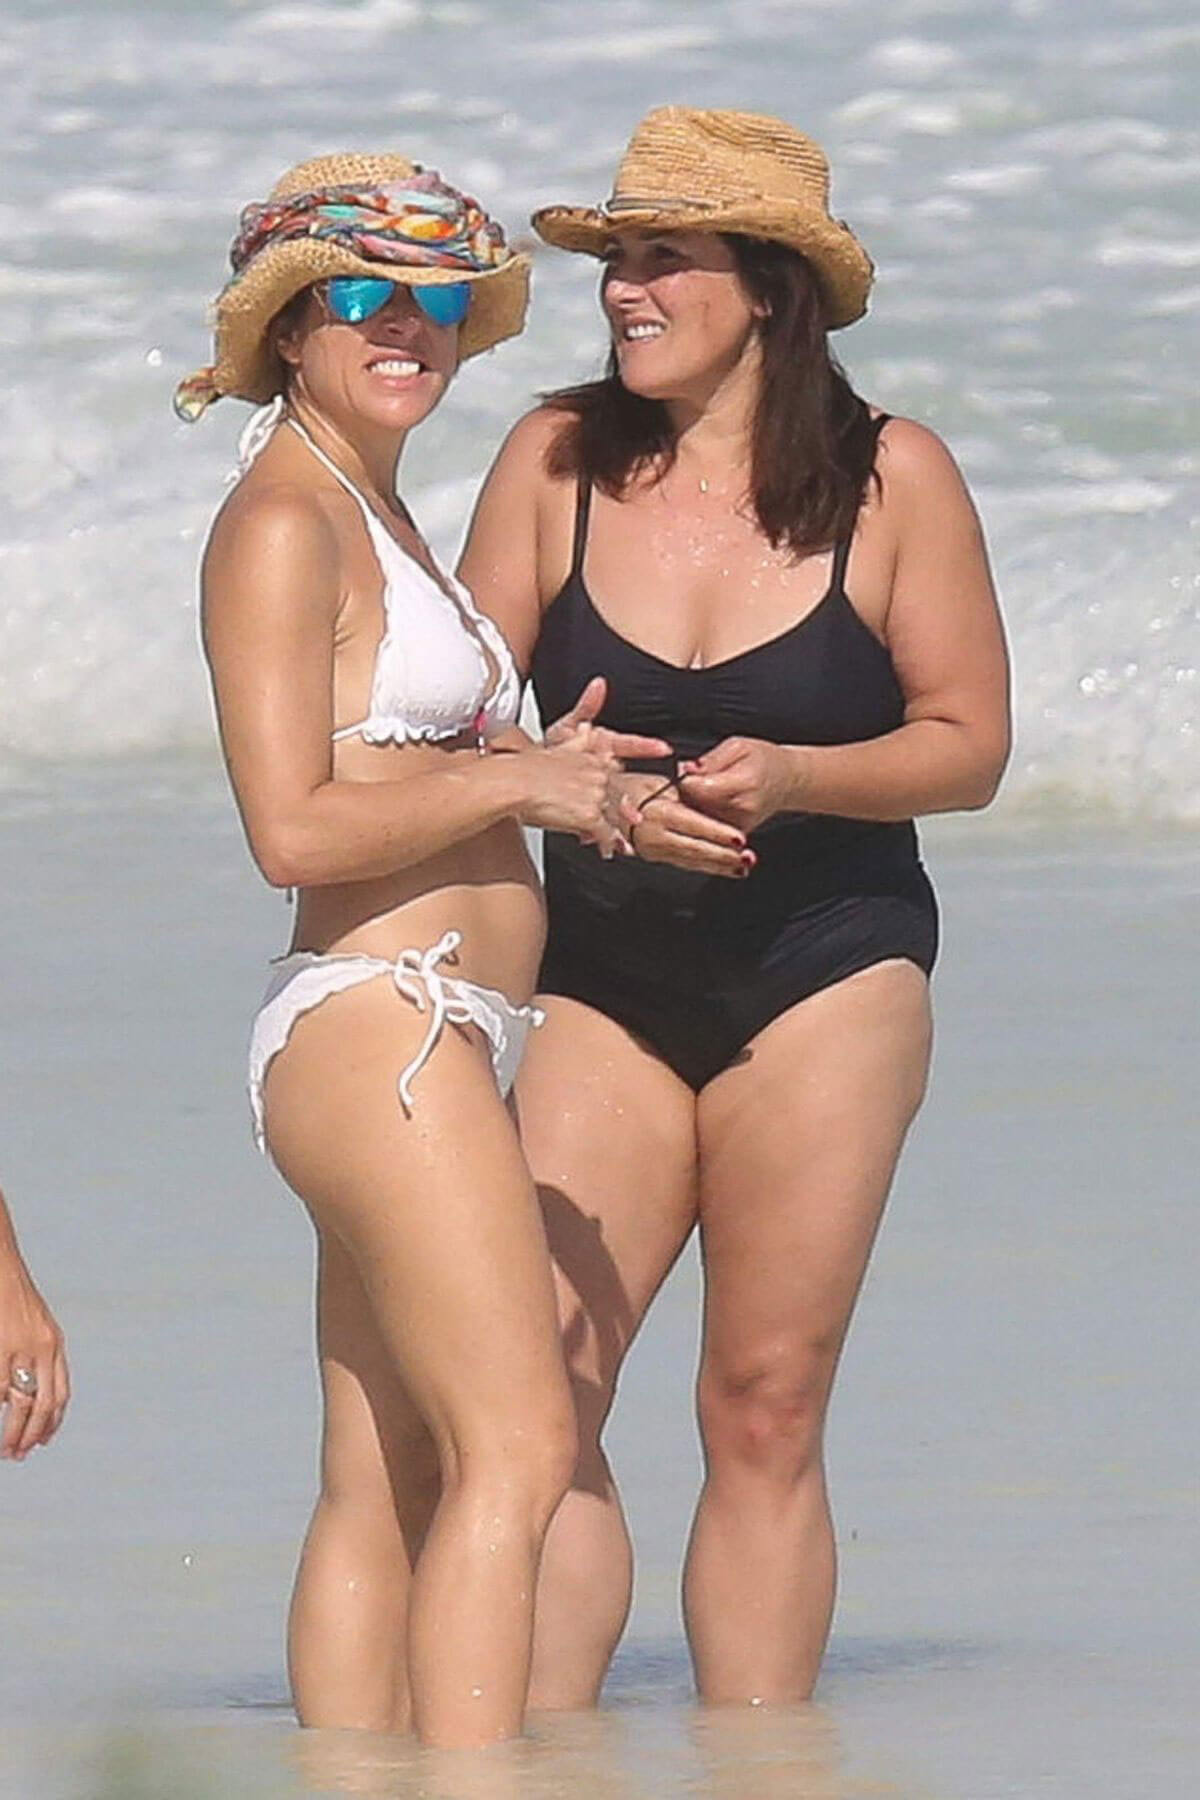 Ricki Lake in Swimsuit with a Friend on the Beach in Cancun Photos